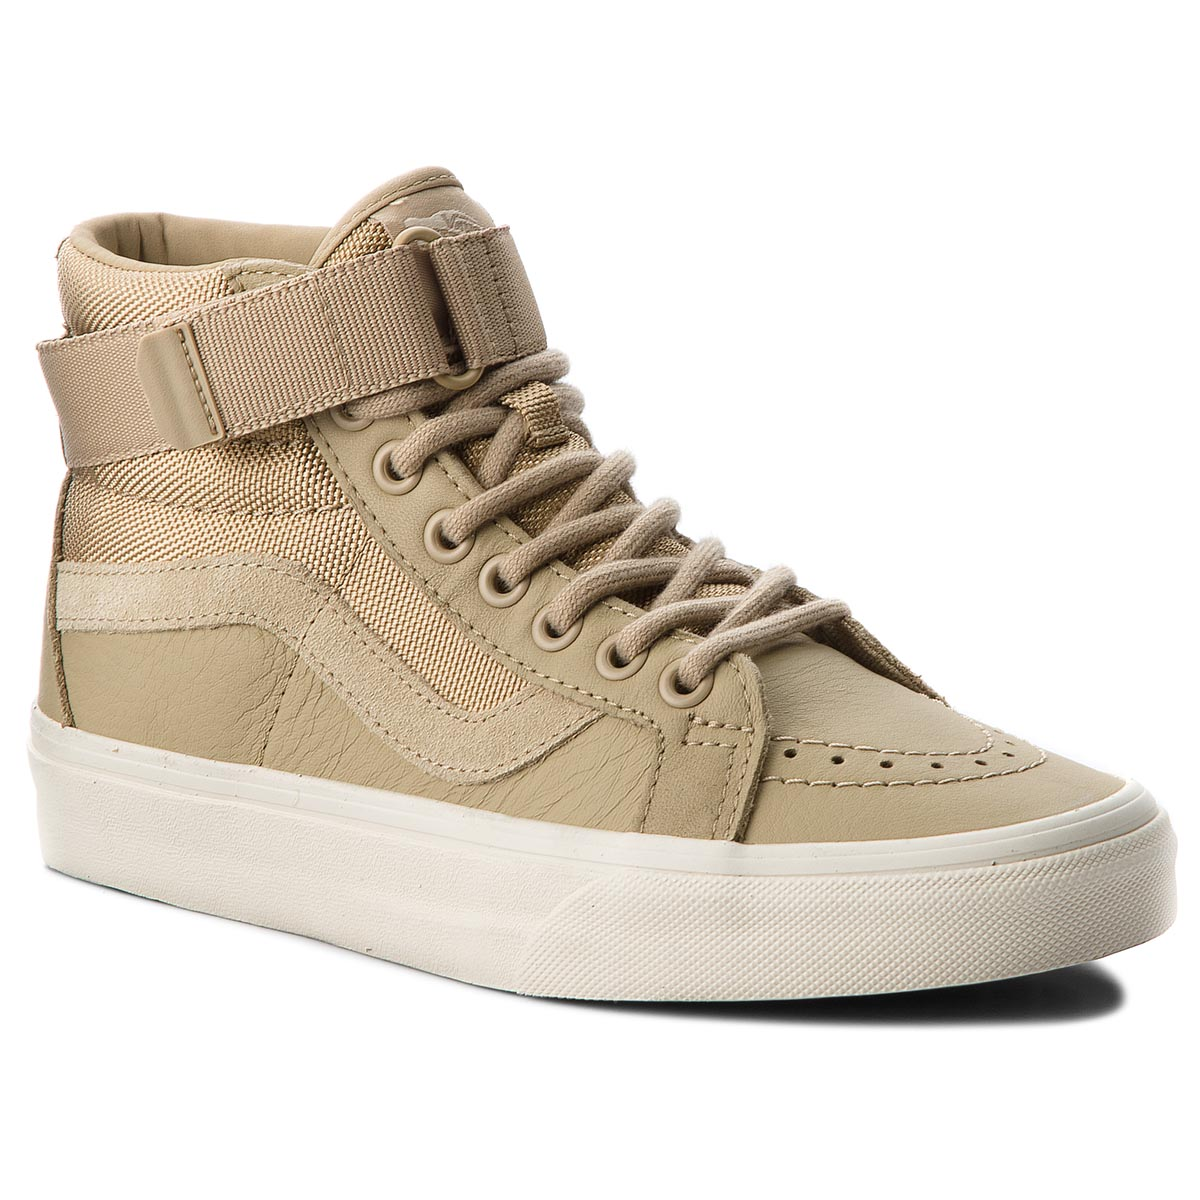 Sneakers VANS - Sk8-Hi Reissue St VN0A3QY2UB5 (Leather) Ballistic/Corns